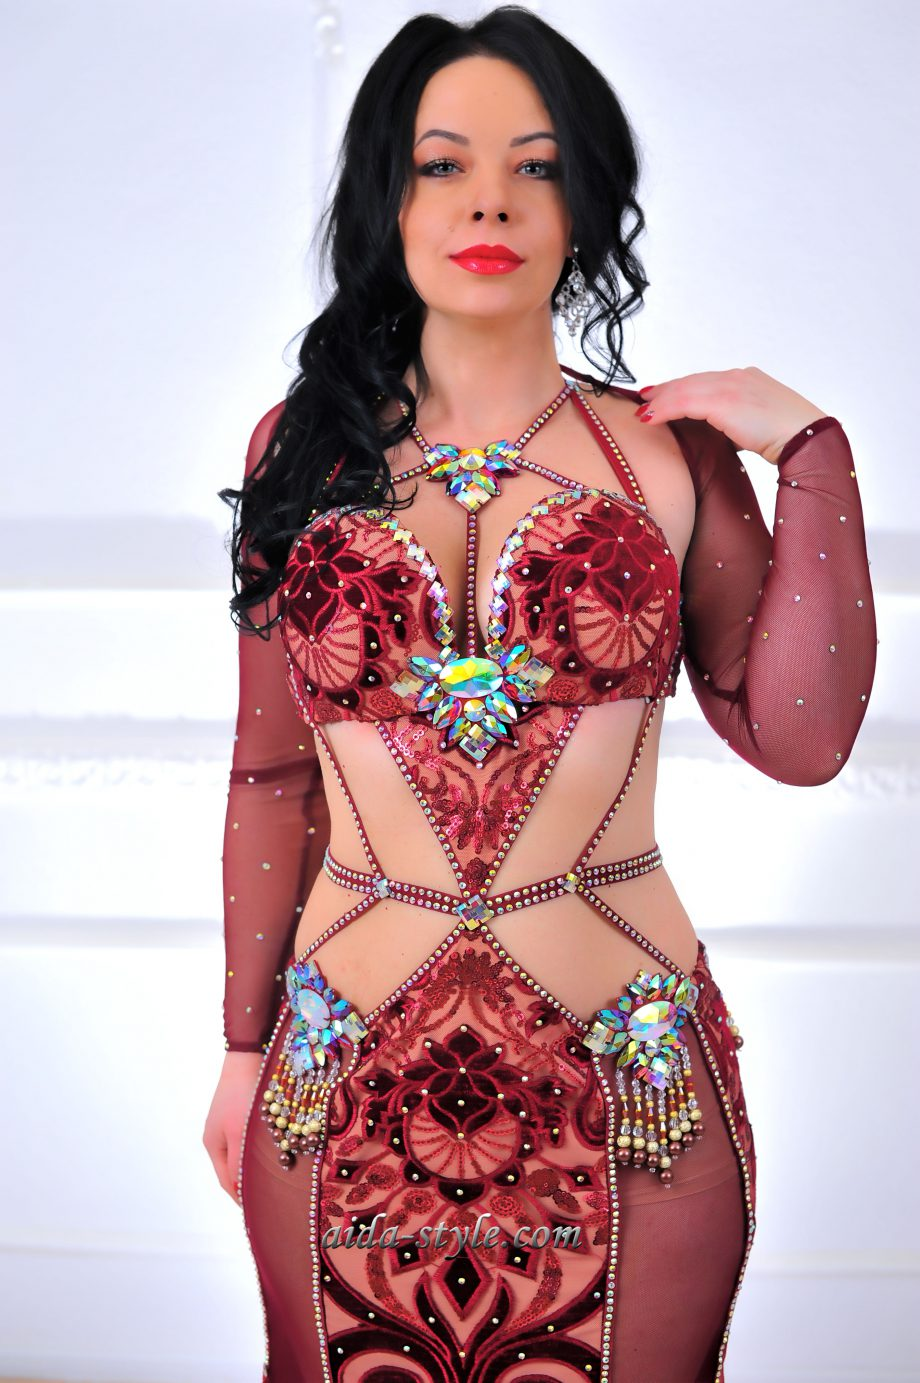 red belly dancer outfit